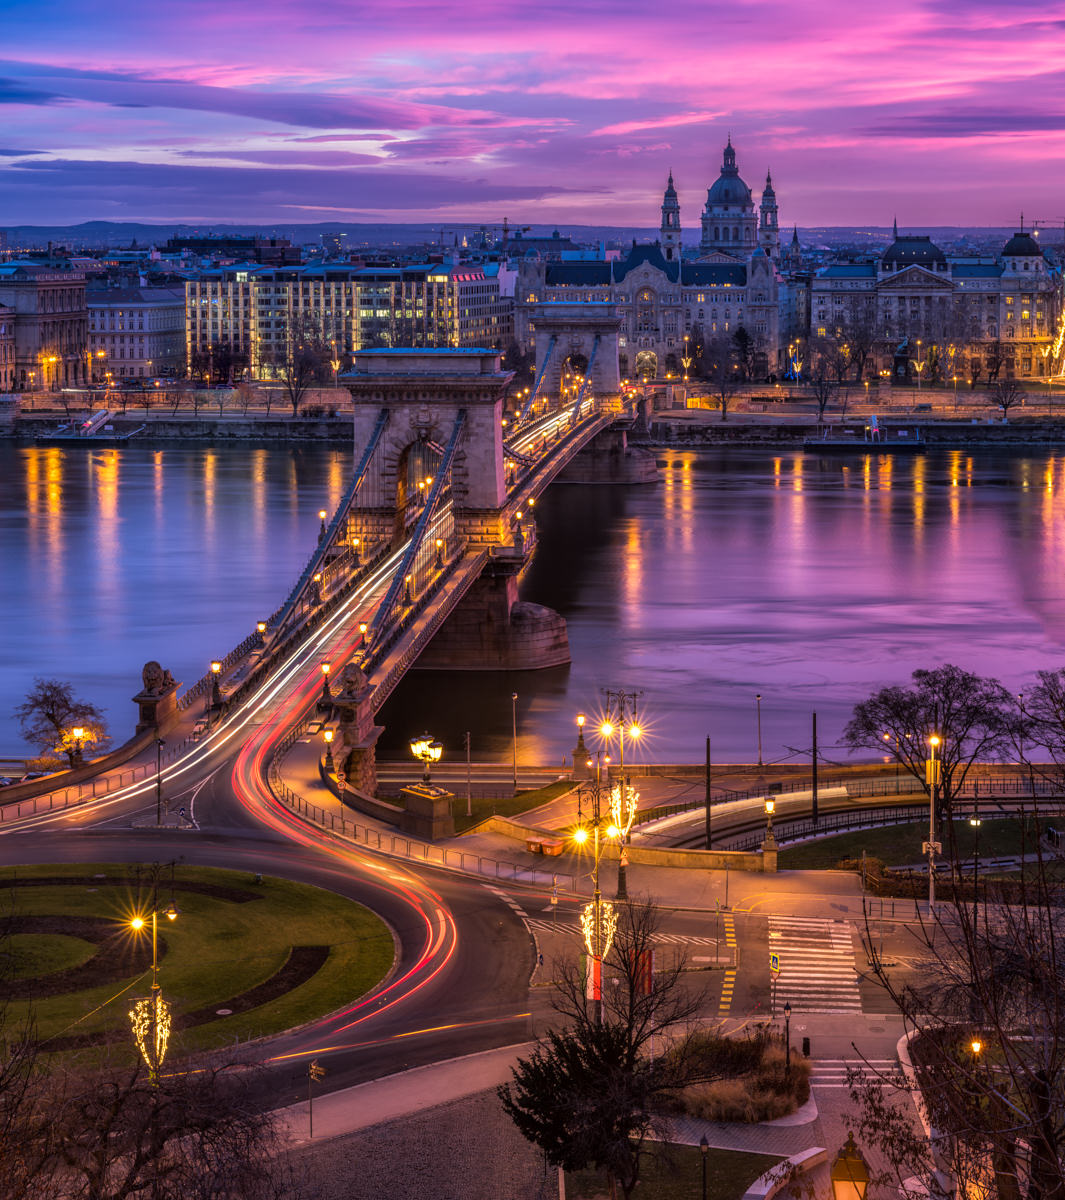 City Photography: Sunrise over Budapest